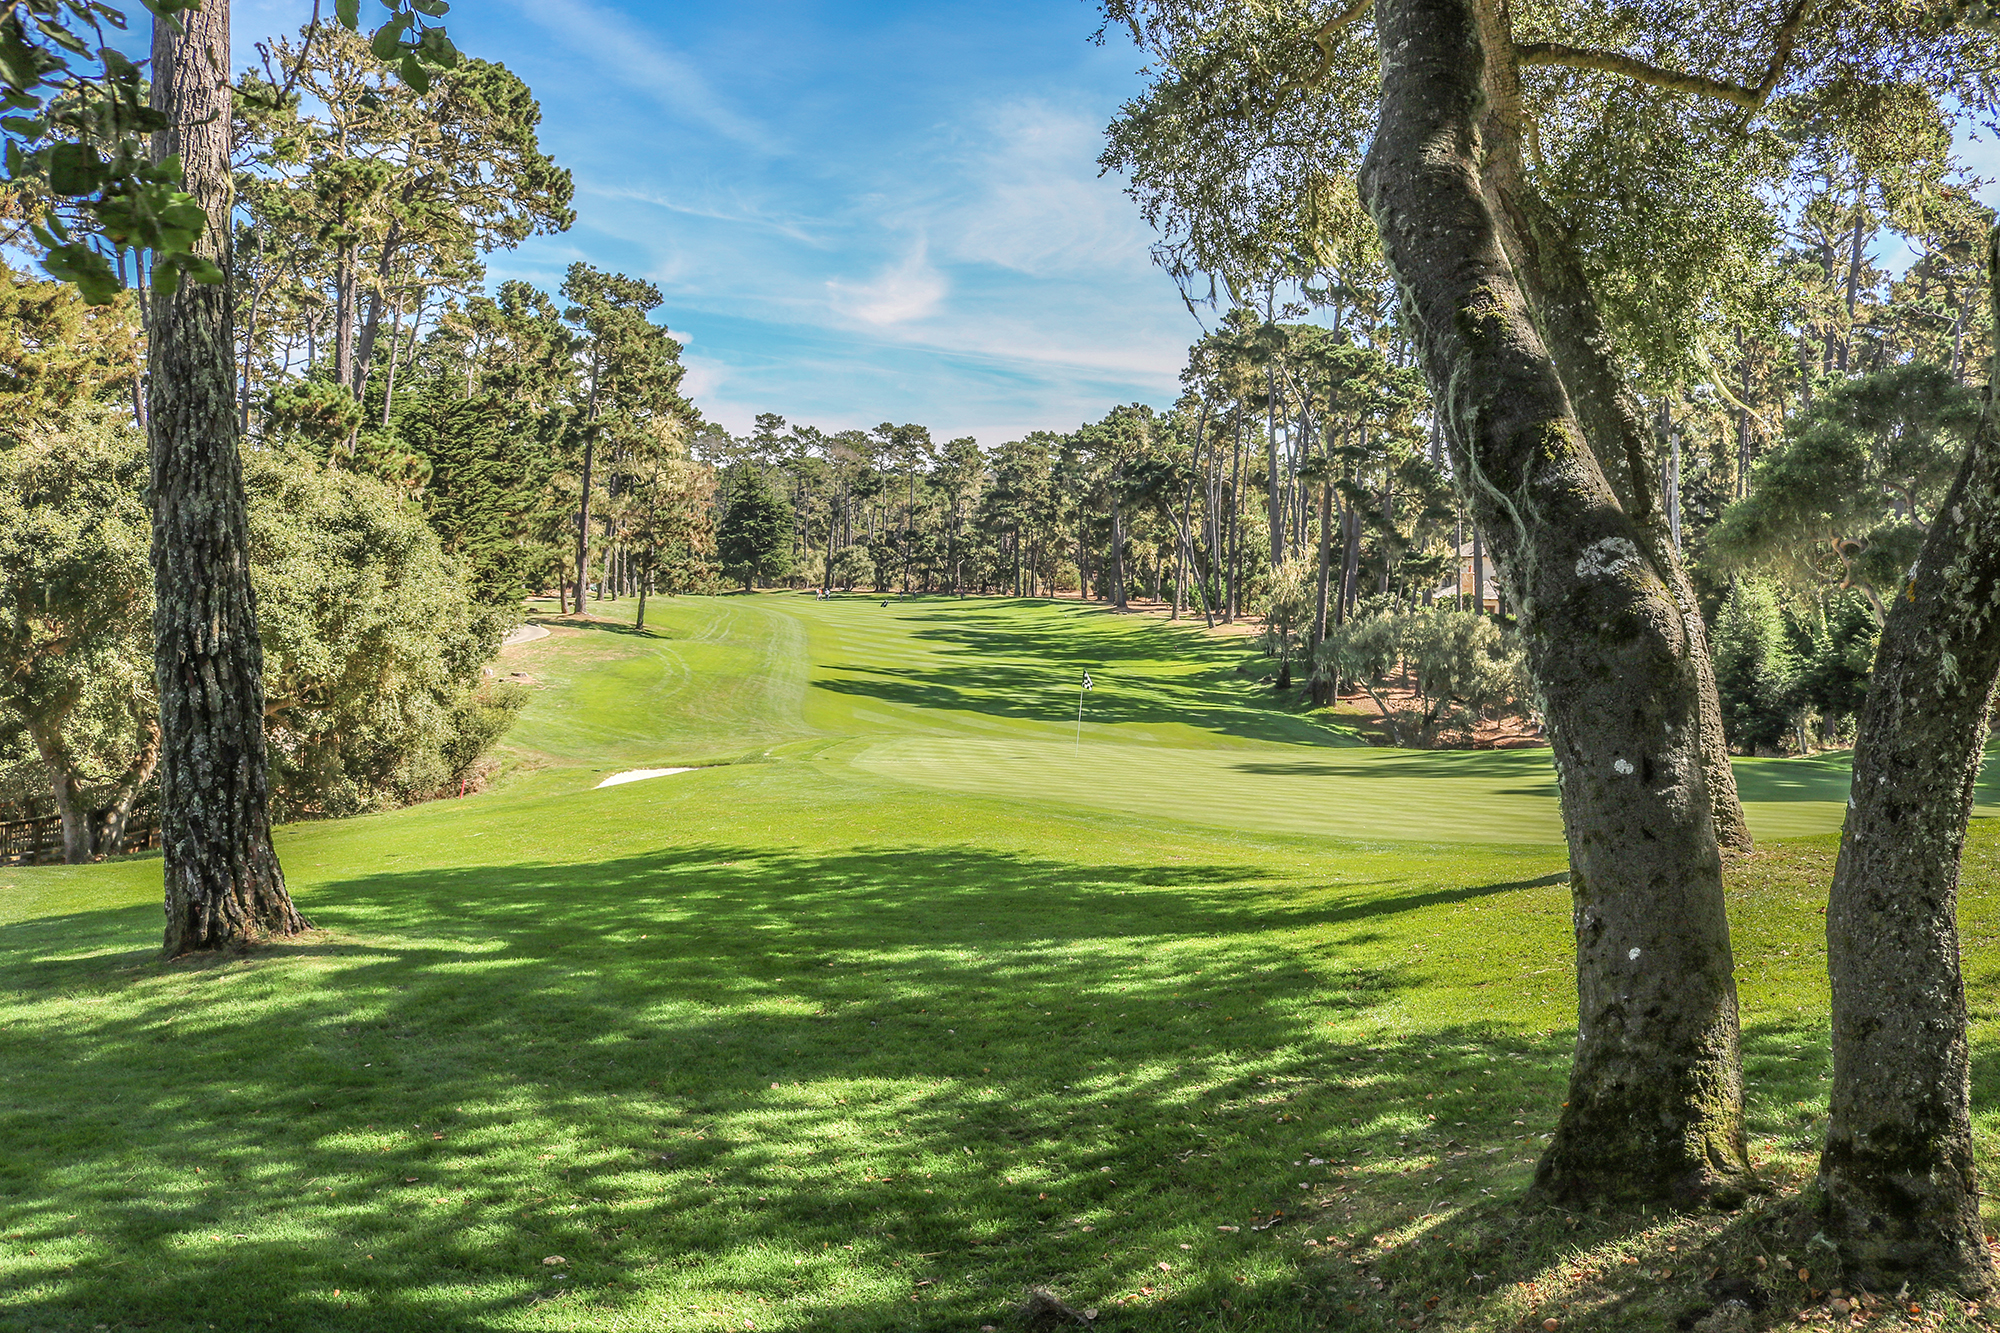 View from behind the 16th green at spyglass hill with tree trunks in foreground